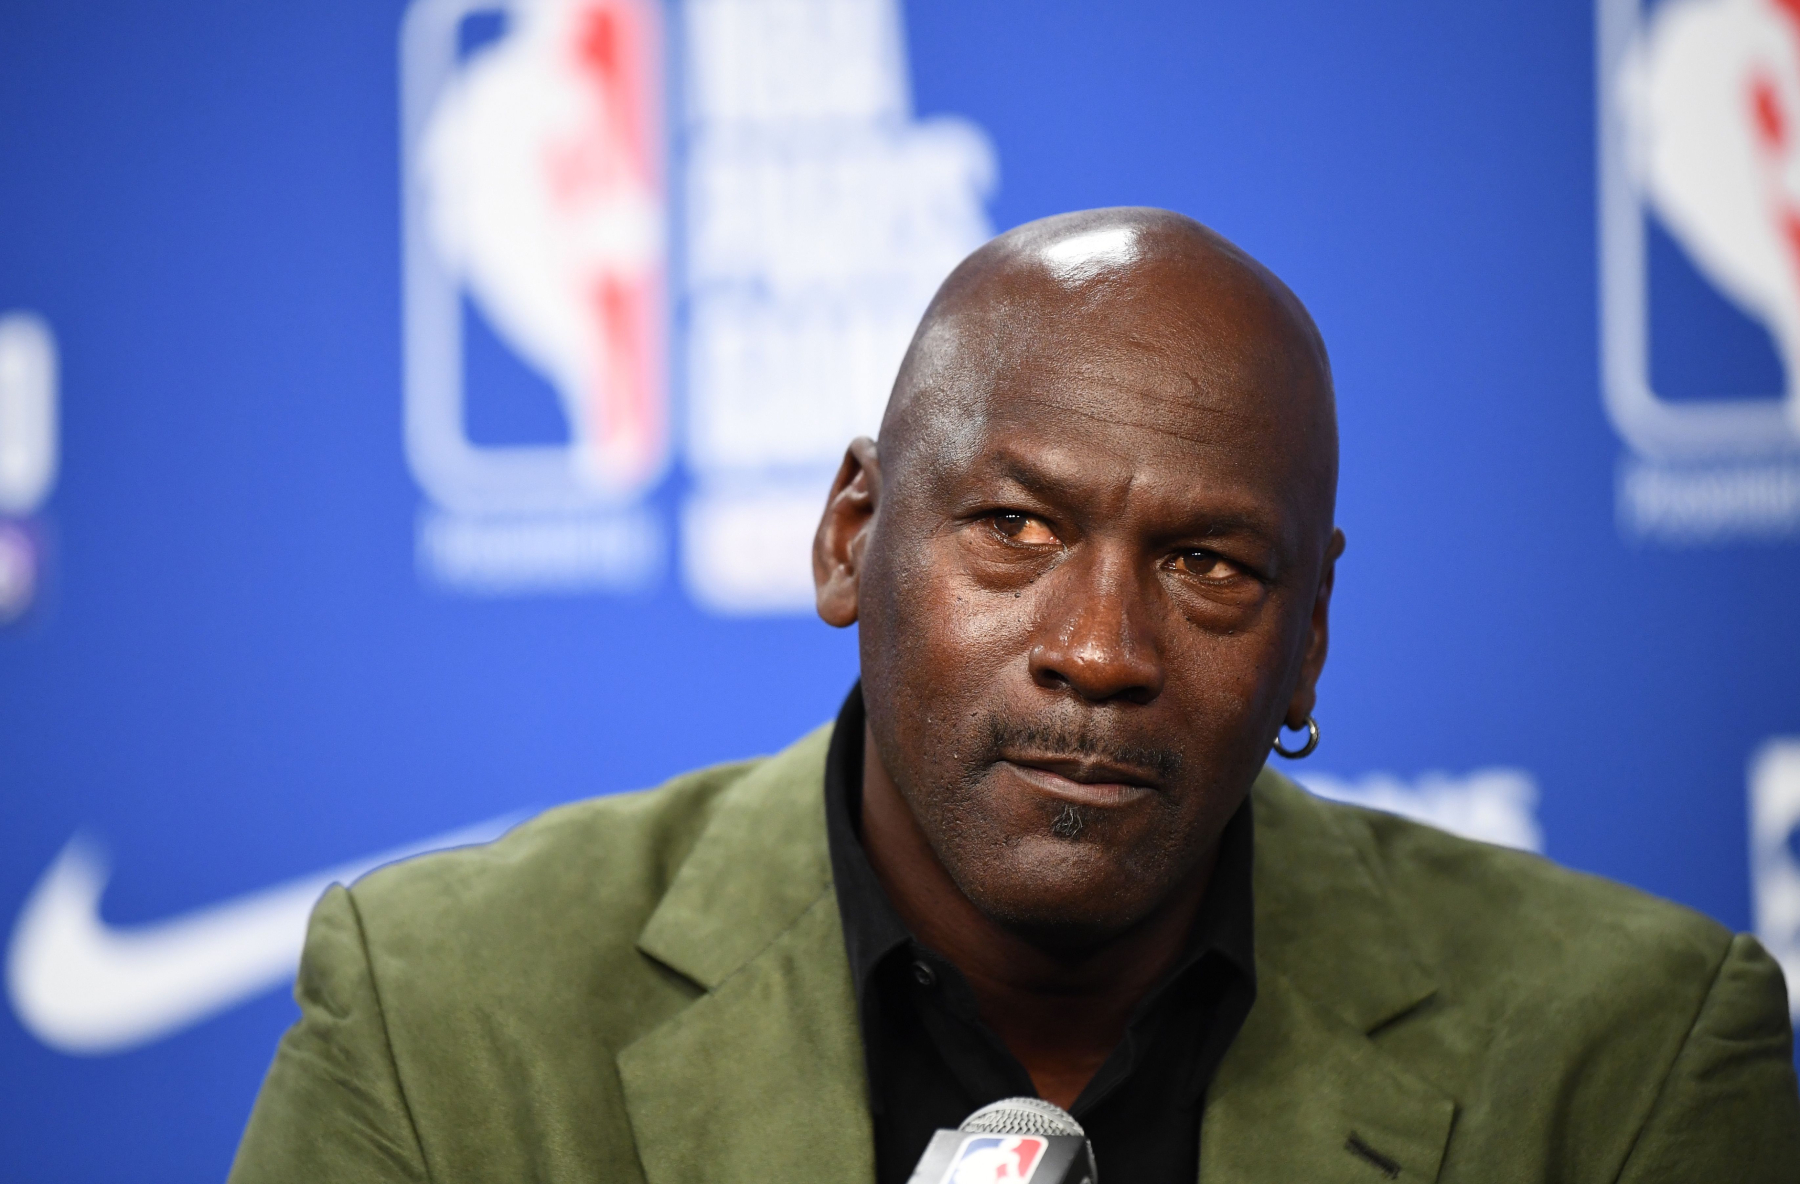 The 2020 NBA season was on the brink of ending this week. However, NBA legend Michael Jordan just played a crucial part in saving it.